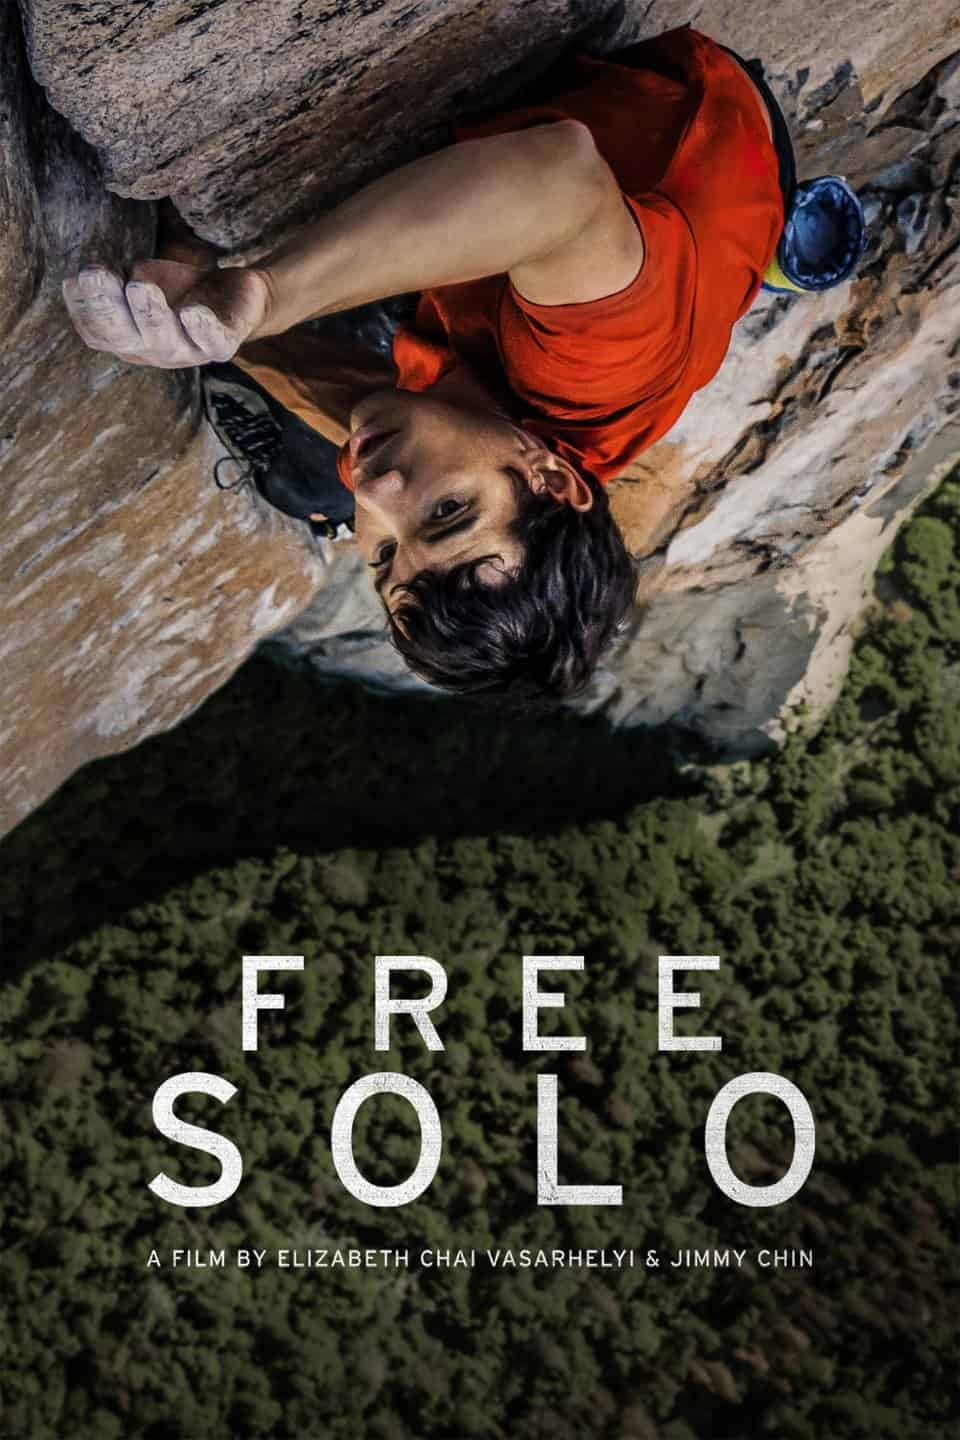 free solo movie flyer